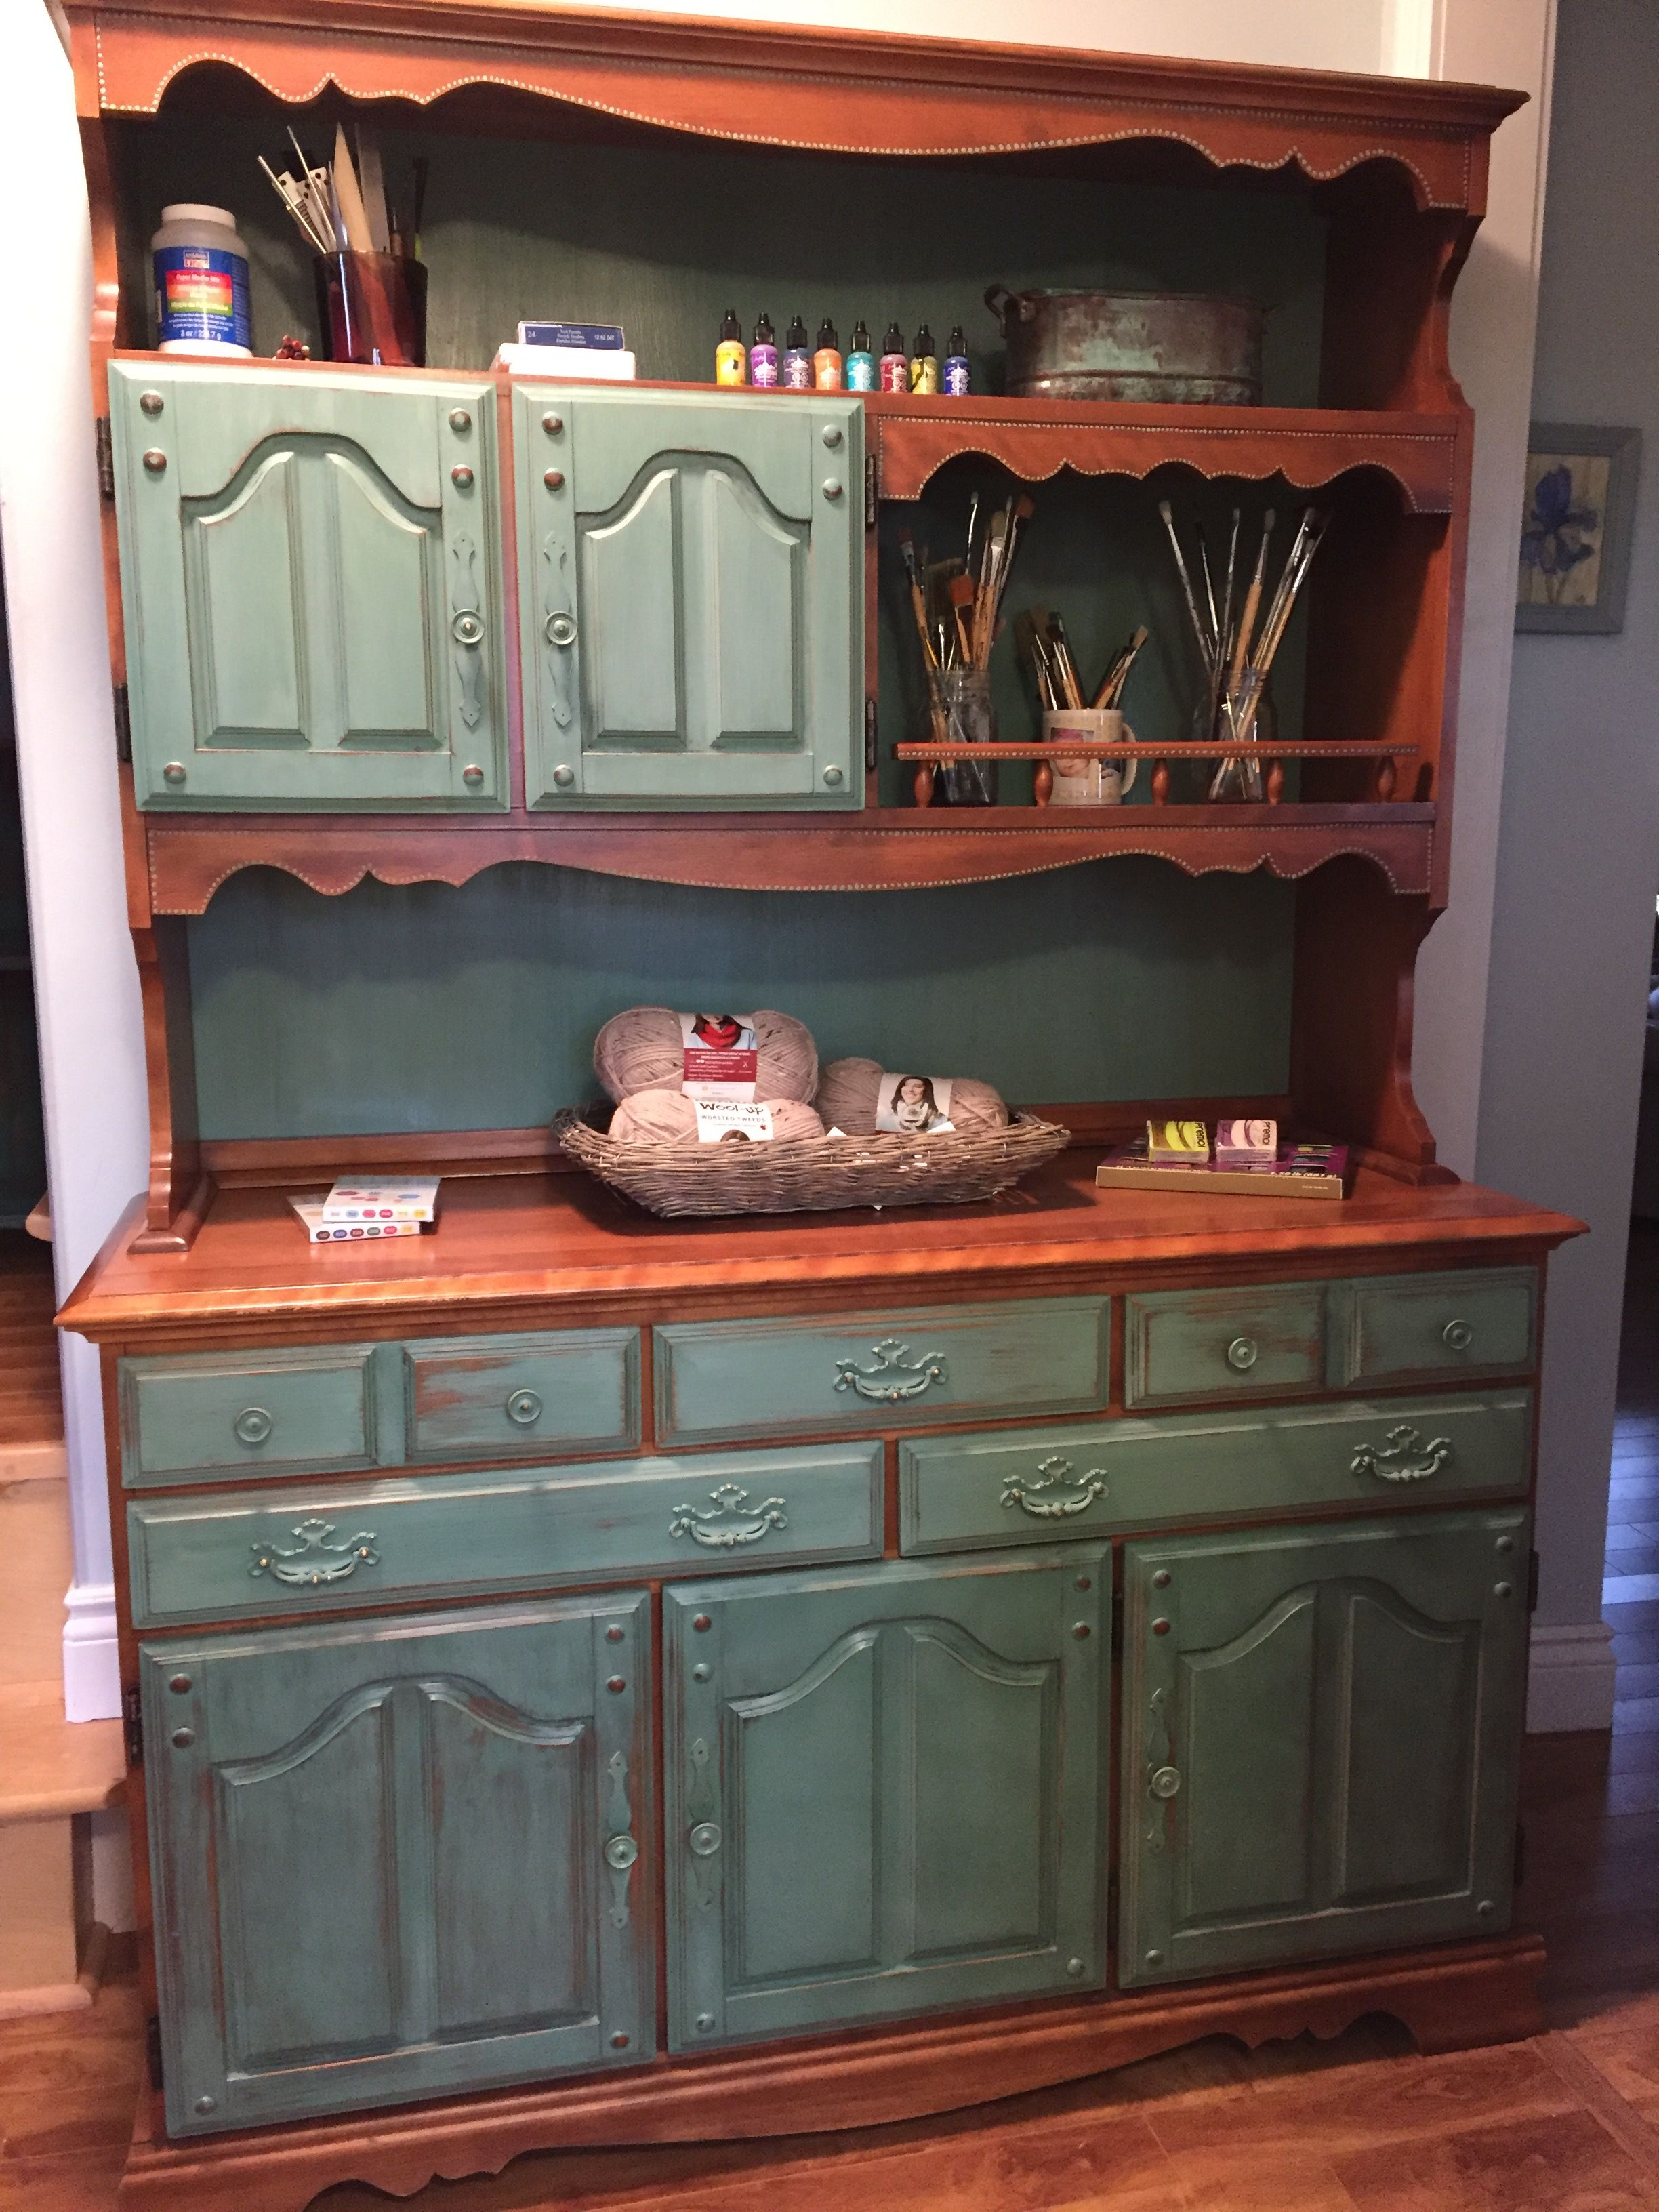 China Cabinet Painted And Used As Art Craft Supply Cupboard Painted And Distressed Using Rustoleum C Painted China Cabinets Rustoleum Chalk Paint Casual Decor